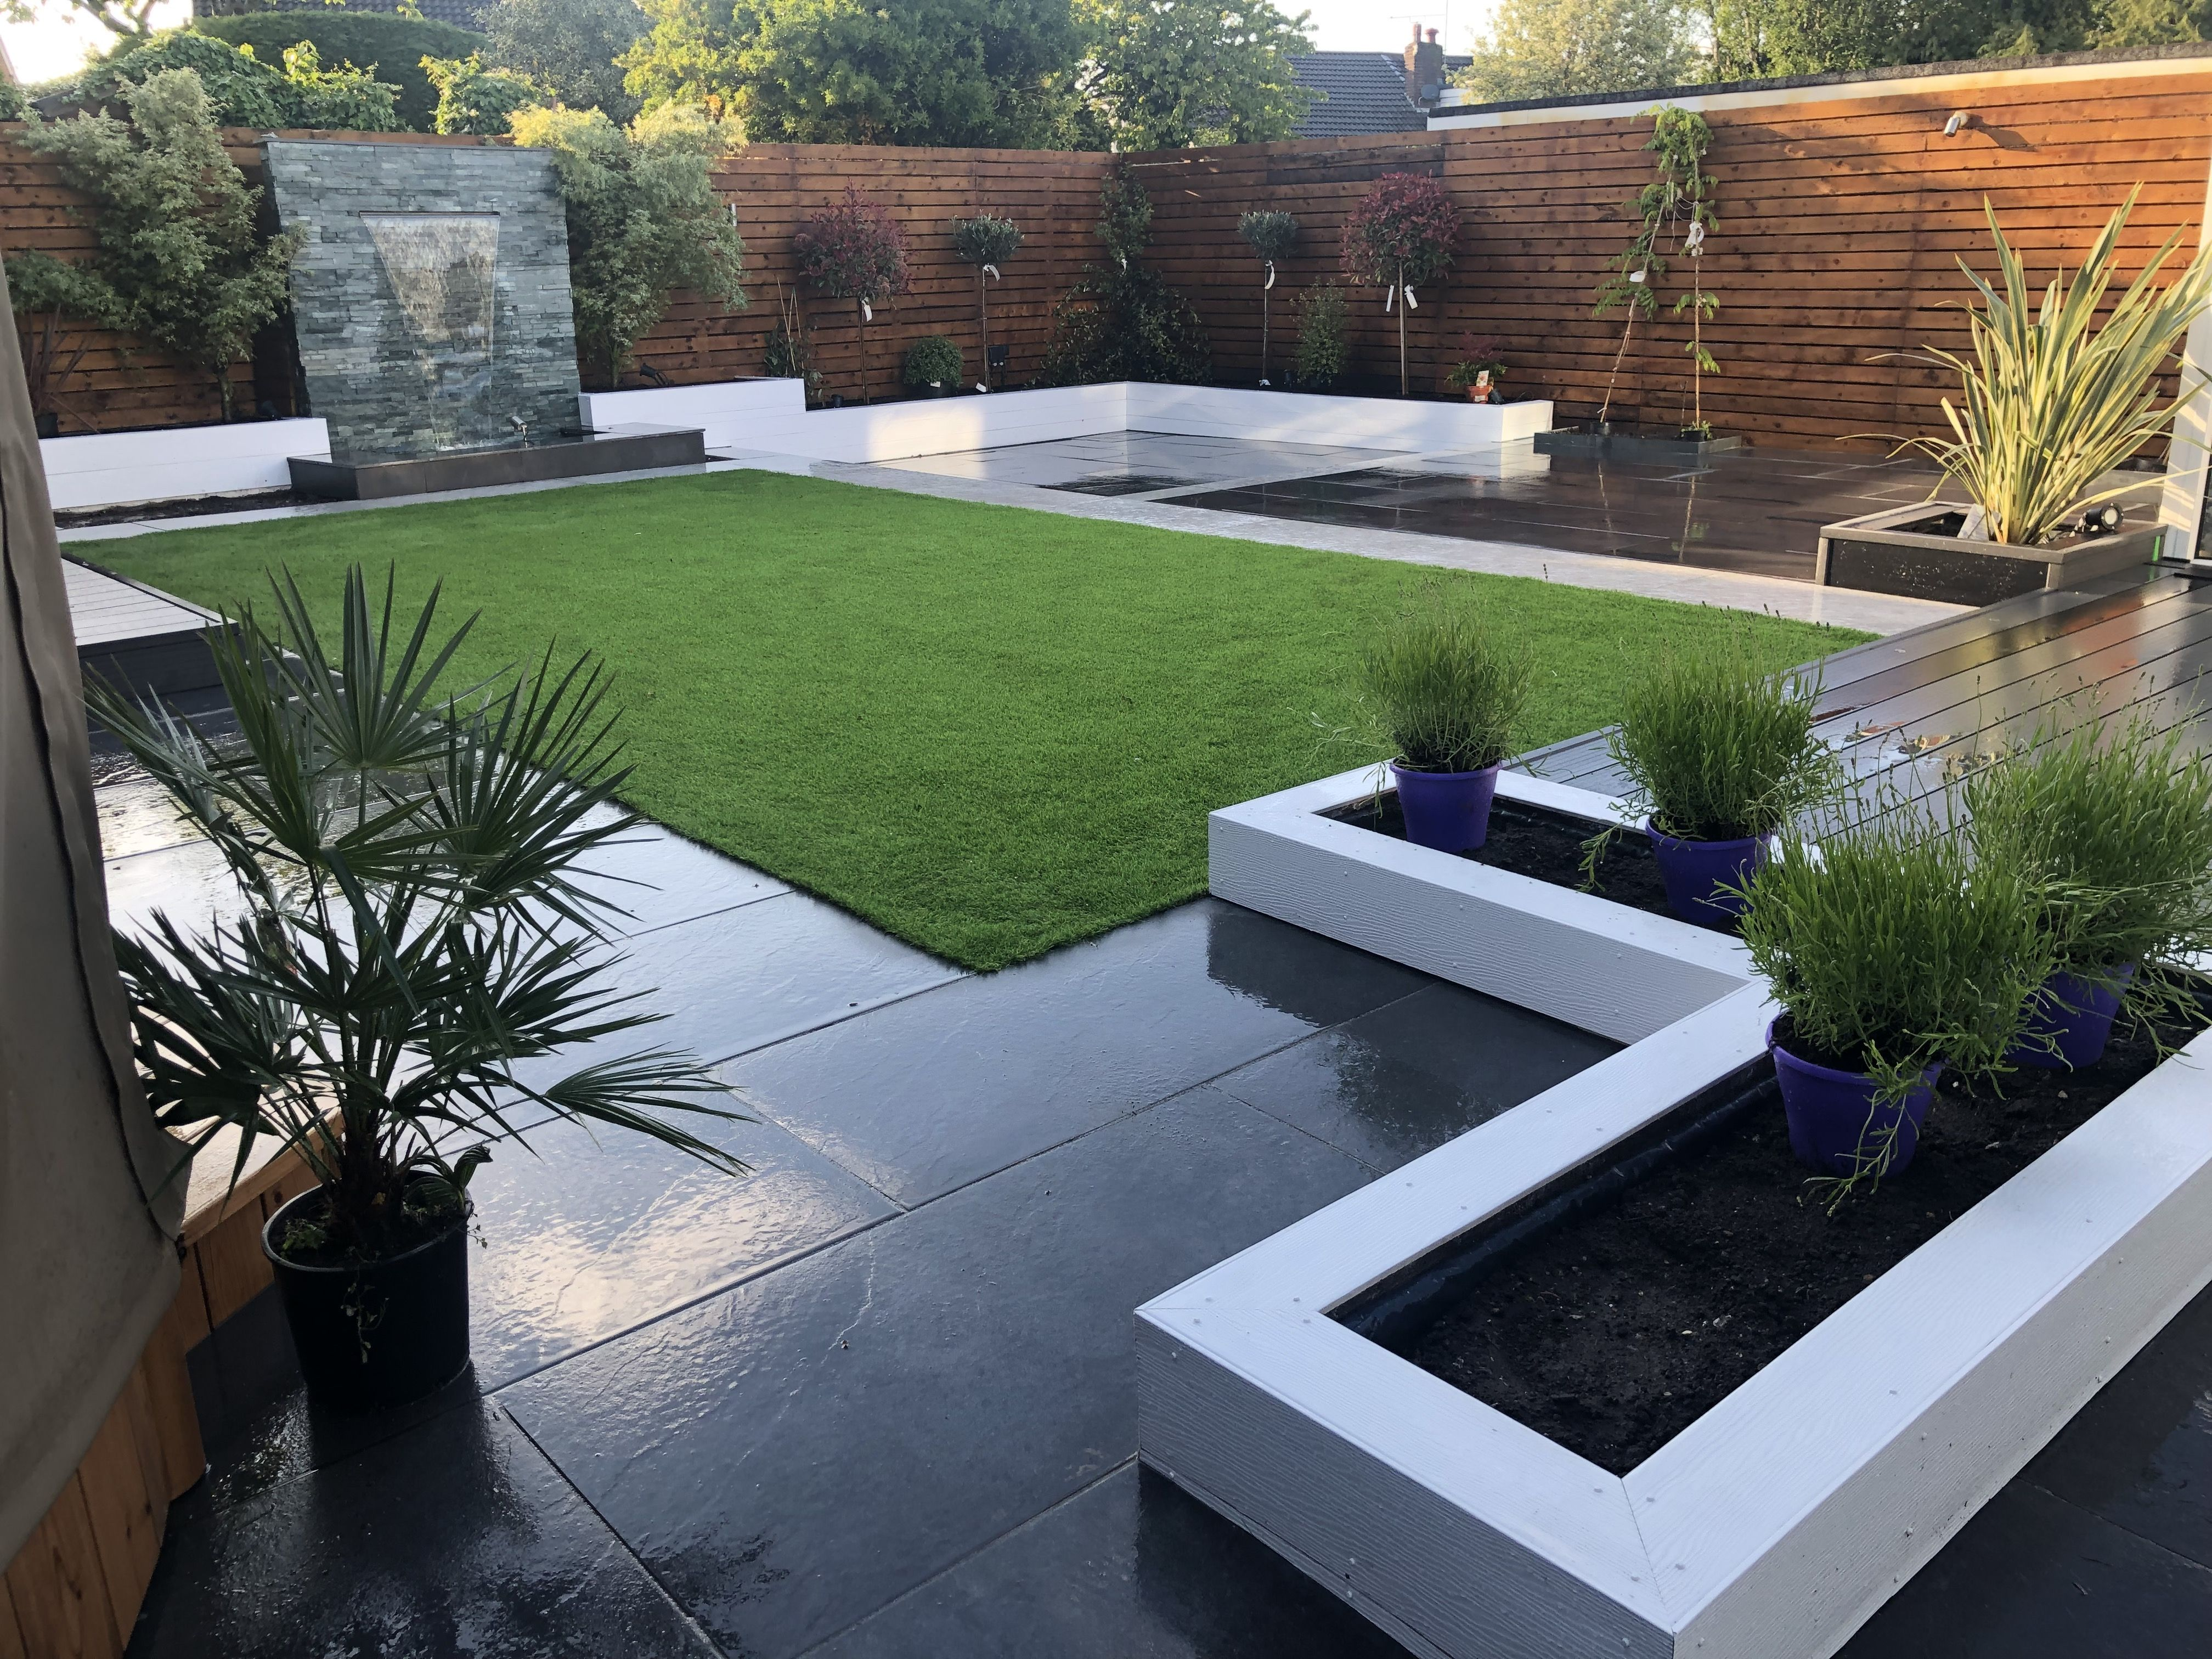 Low Maintenance Garden With Symphony Vitrified Patio And Path Composite Deckin Modern Backyard Landscaping Backyard Landscaping Designs Outdoor Gardens Design Modern garden ideas with sleepers